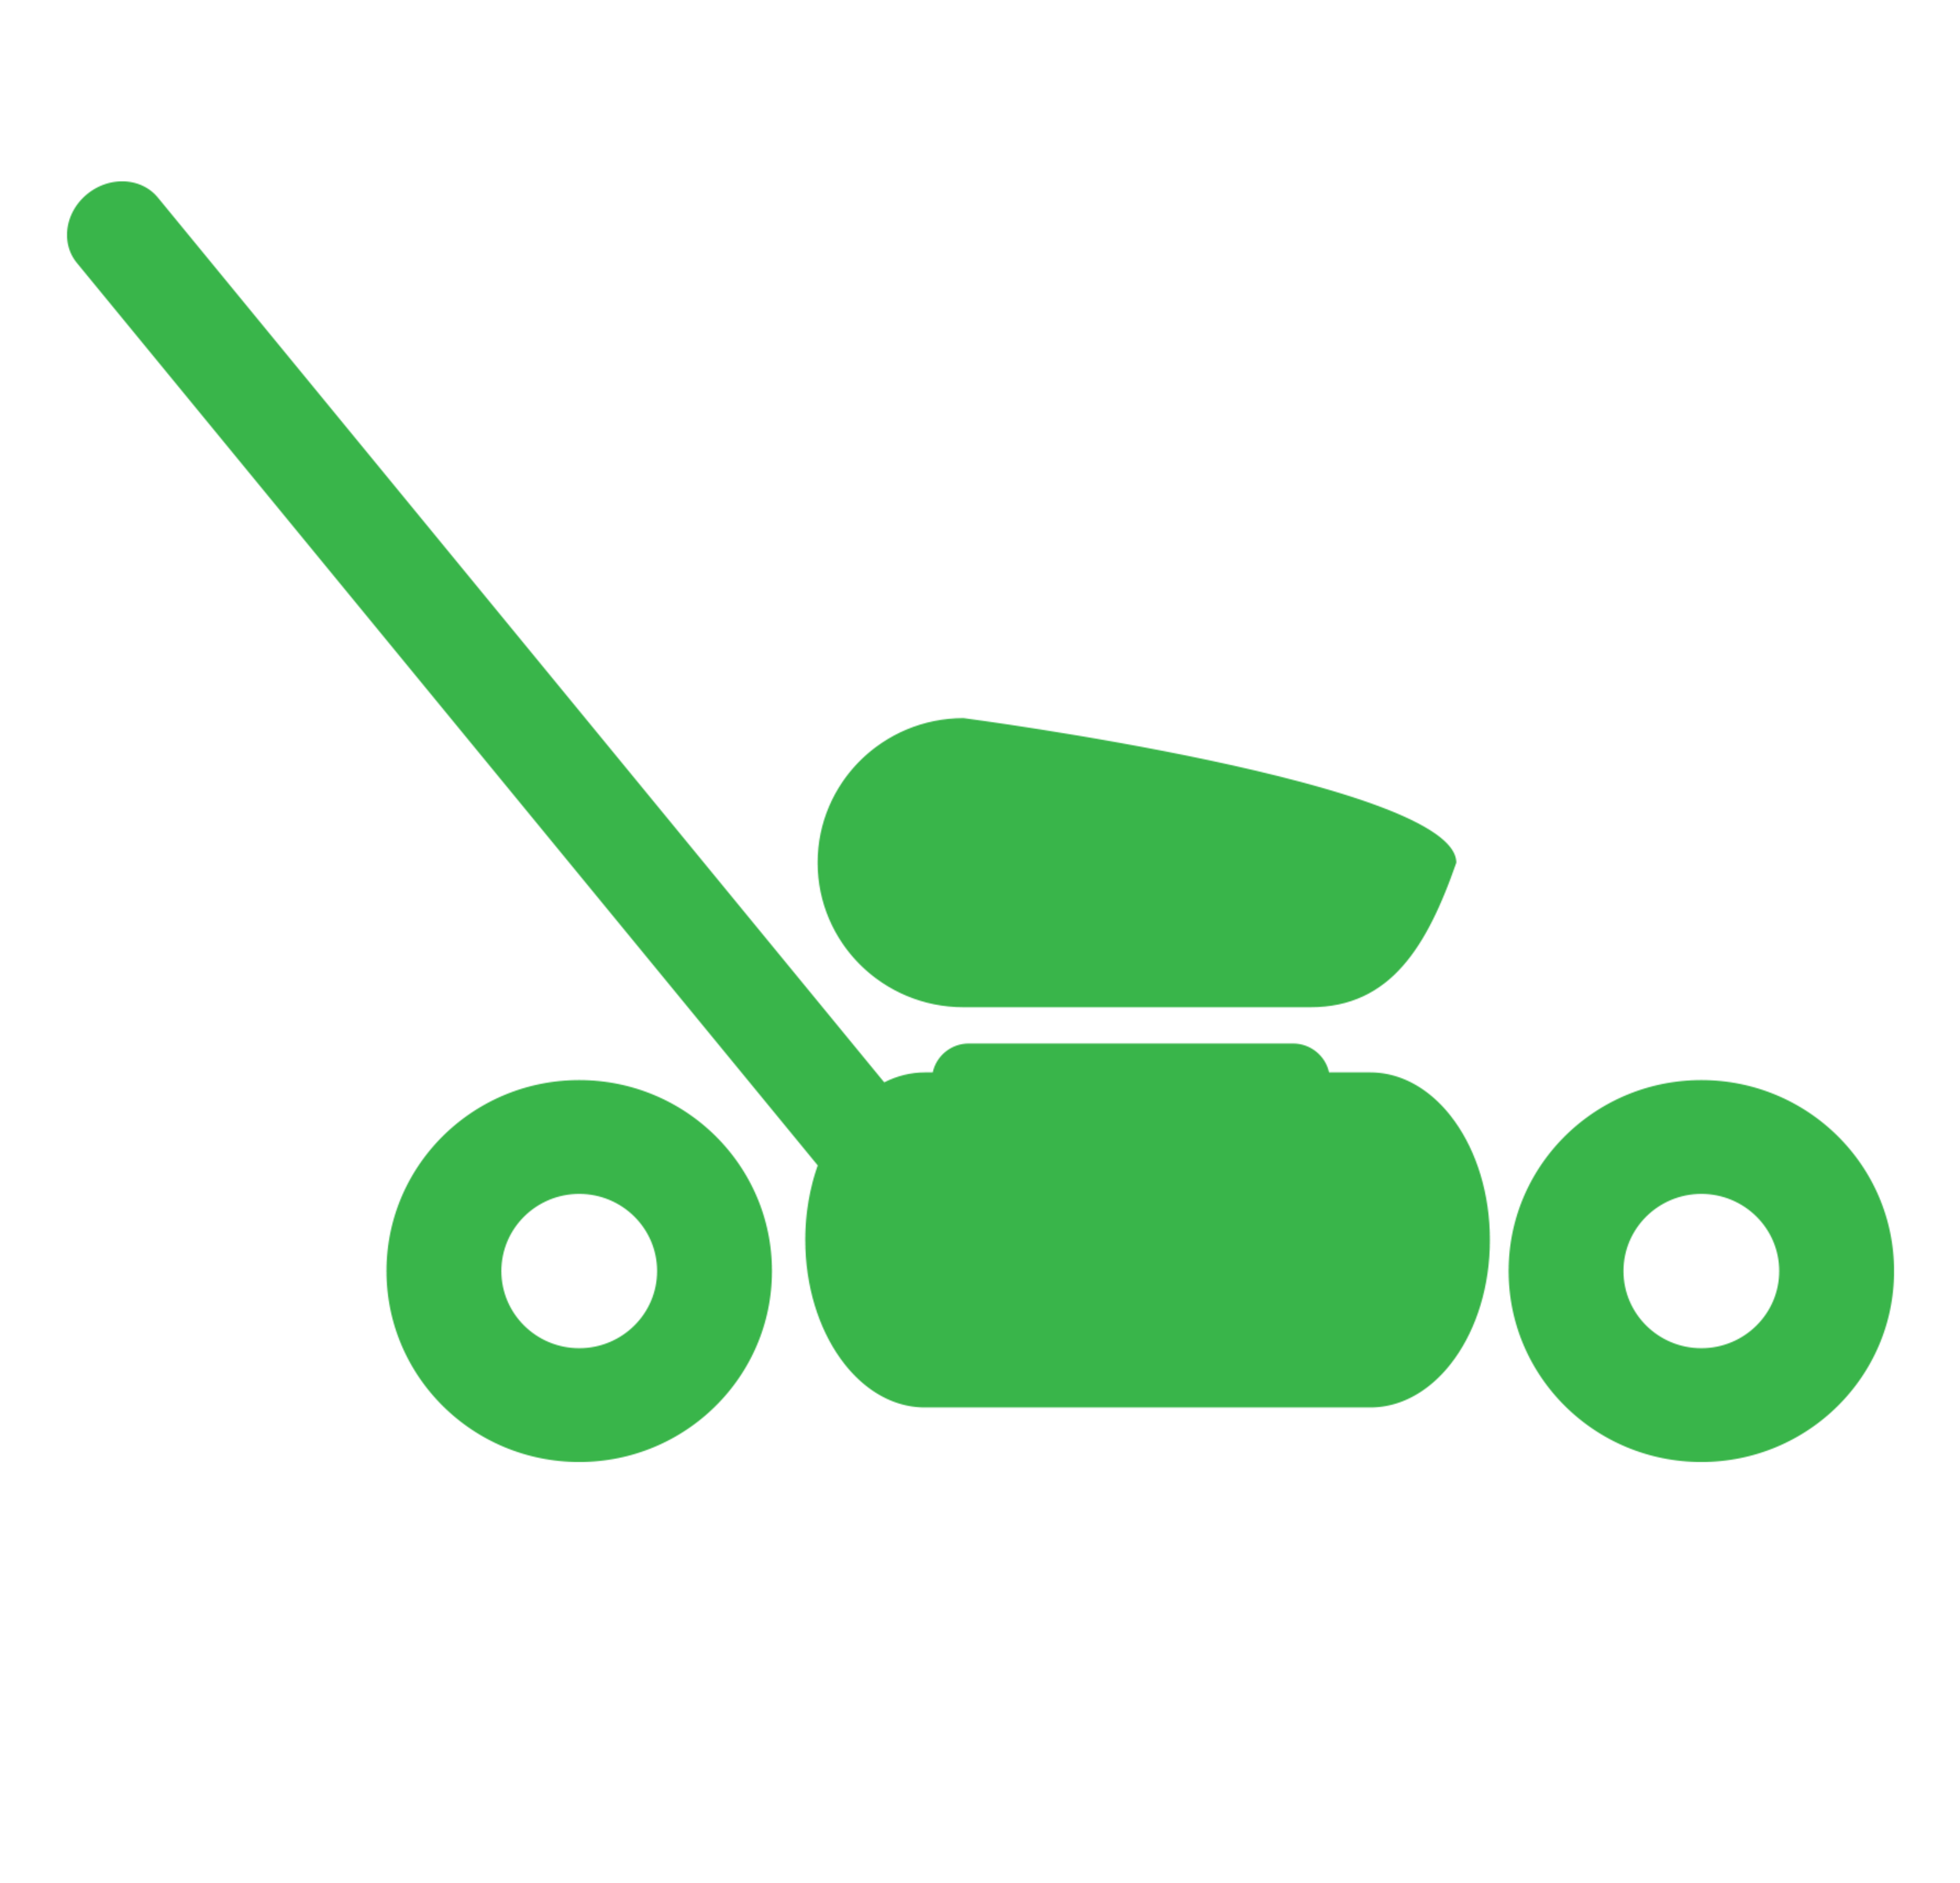 best lawn mower clipart 15189 clipartion com free lawn mower clipart download free lawn mower clipart download